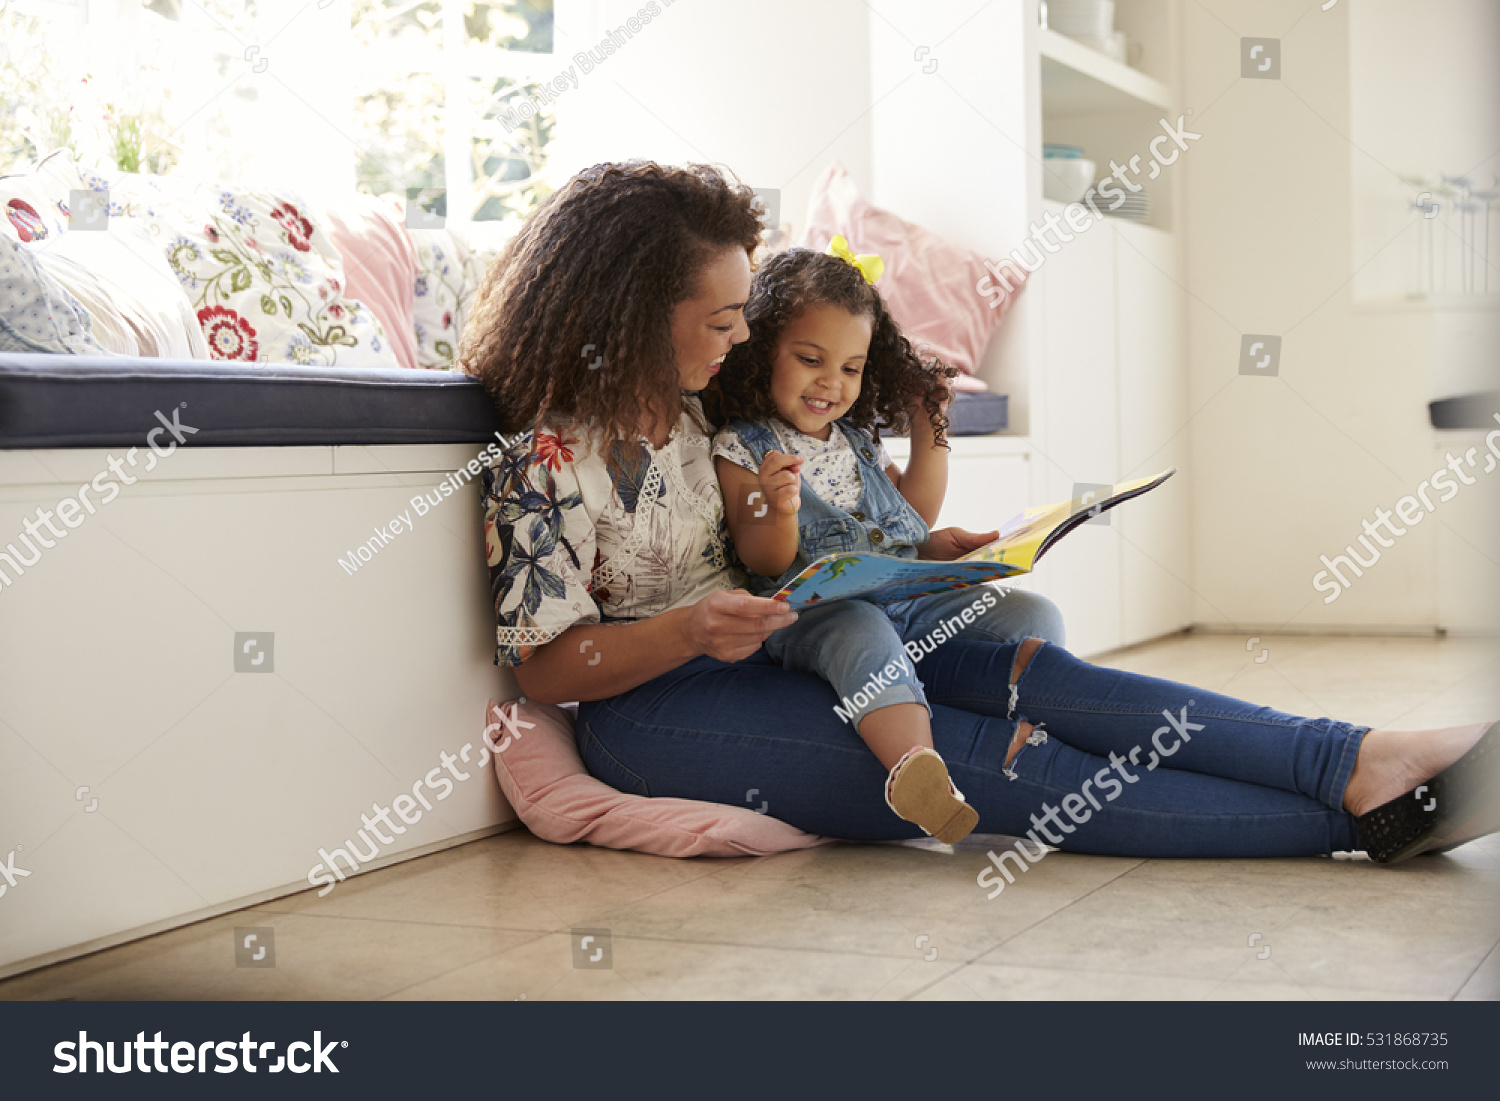 mother sitting on floor reading book stock photo 531868735 shutterstock. Black Bedroom Furniture Sets. Home Design Ideas